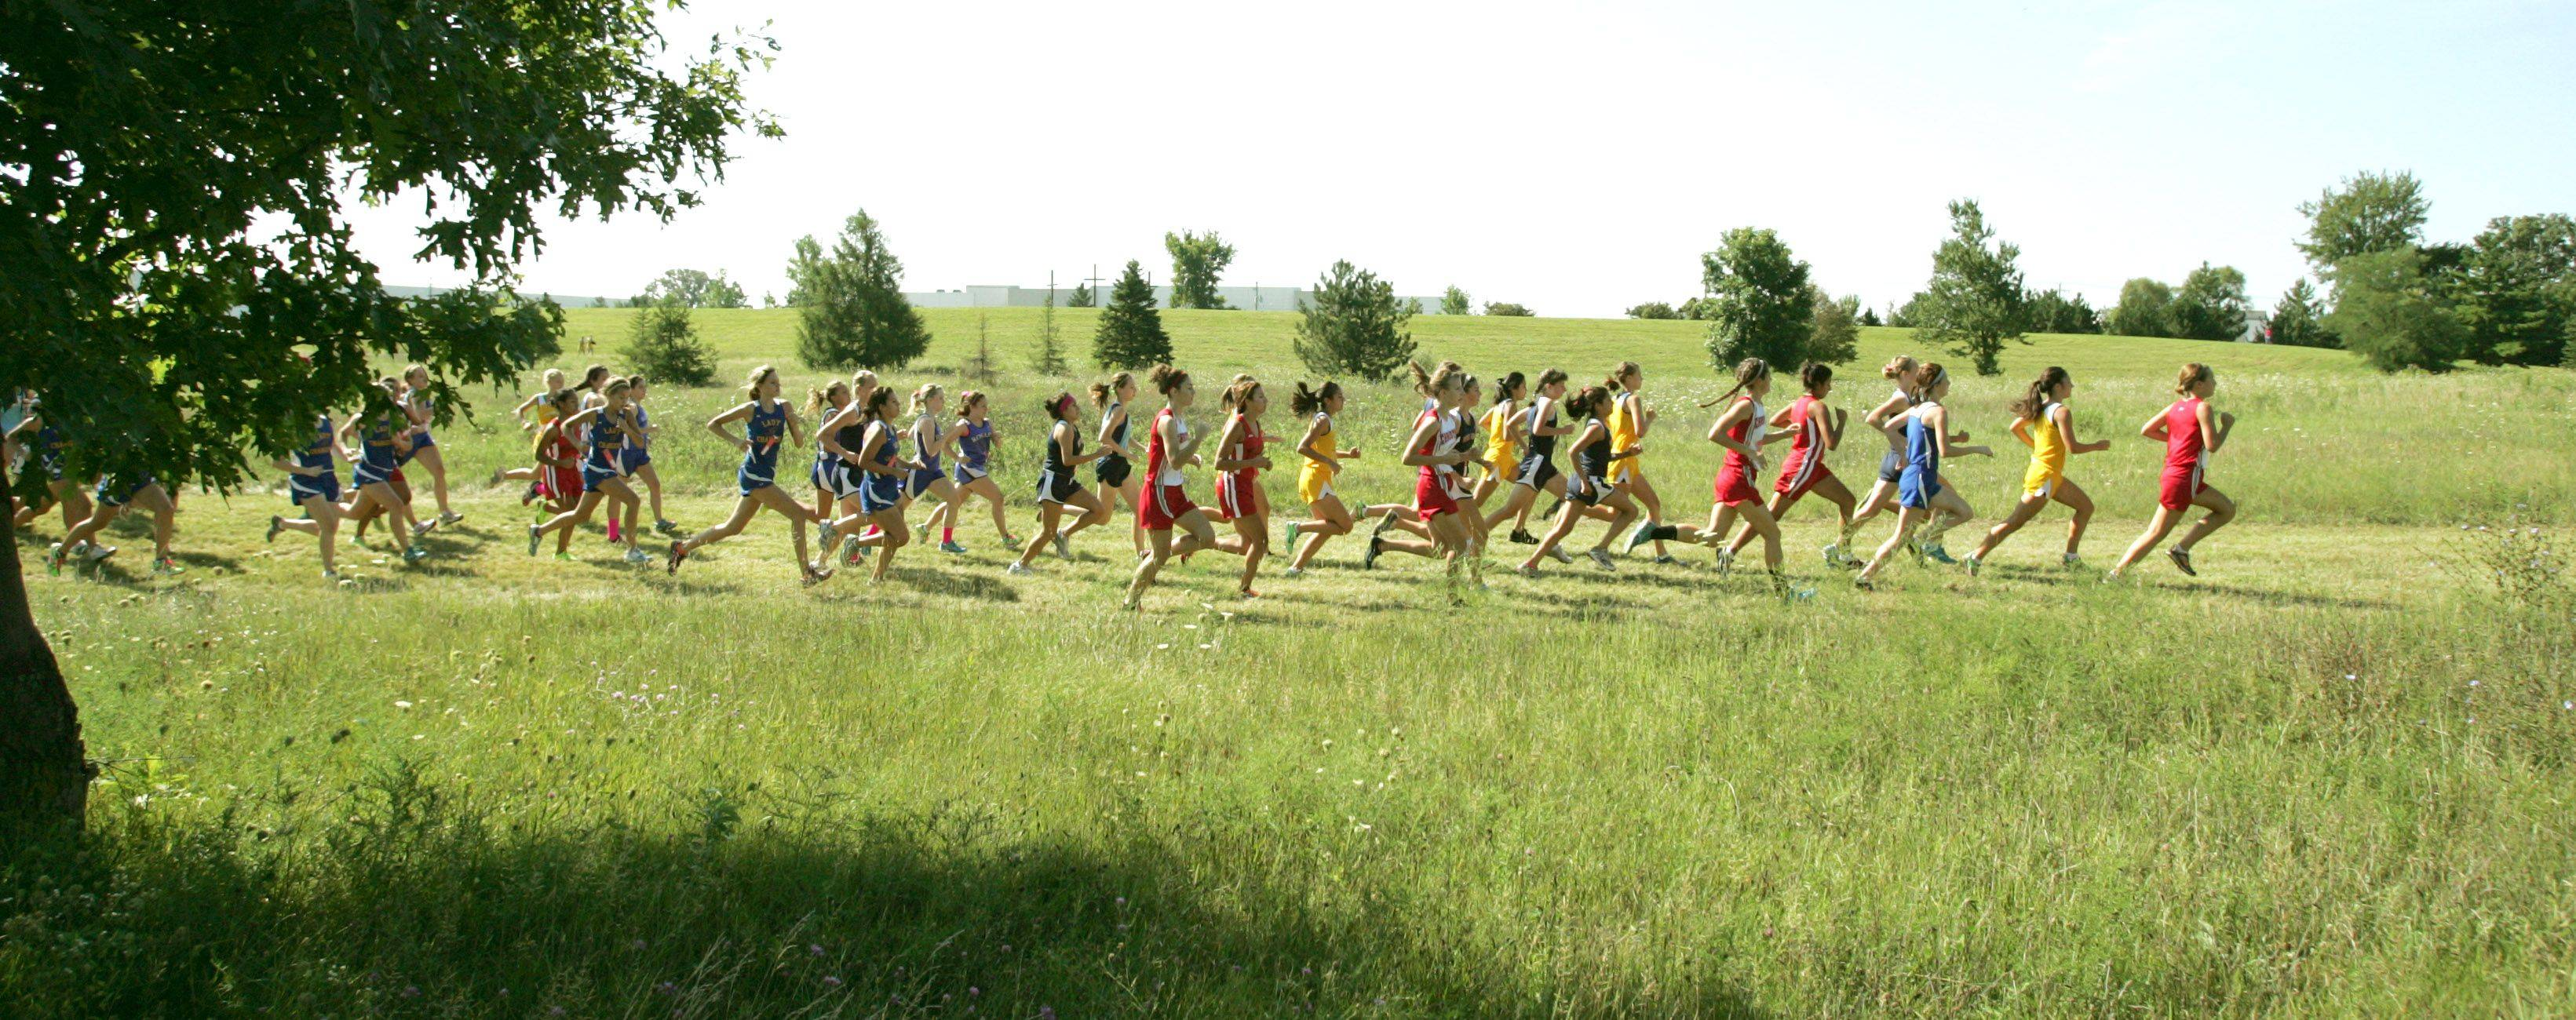 Runners fight for positon during the first 200 yards of the girls cross country meet at Marmion High School Saturday.